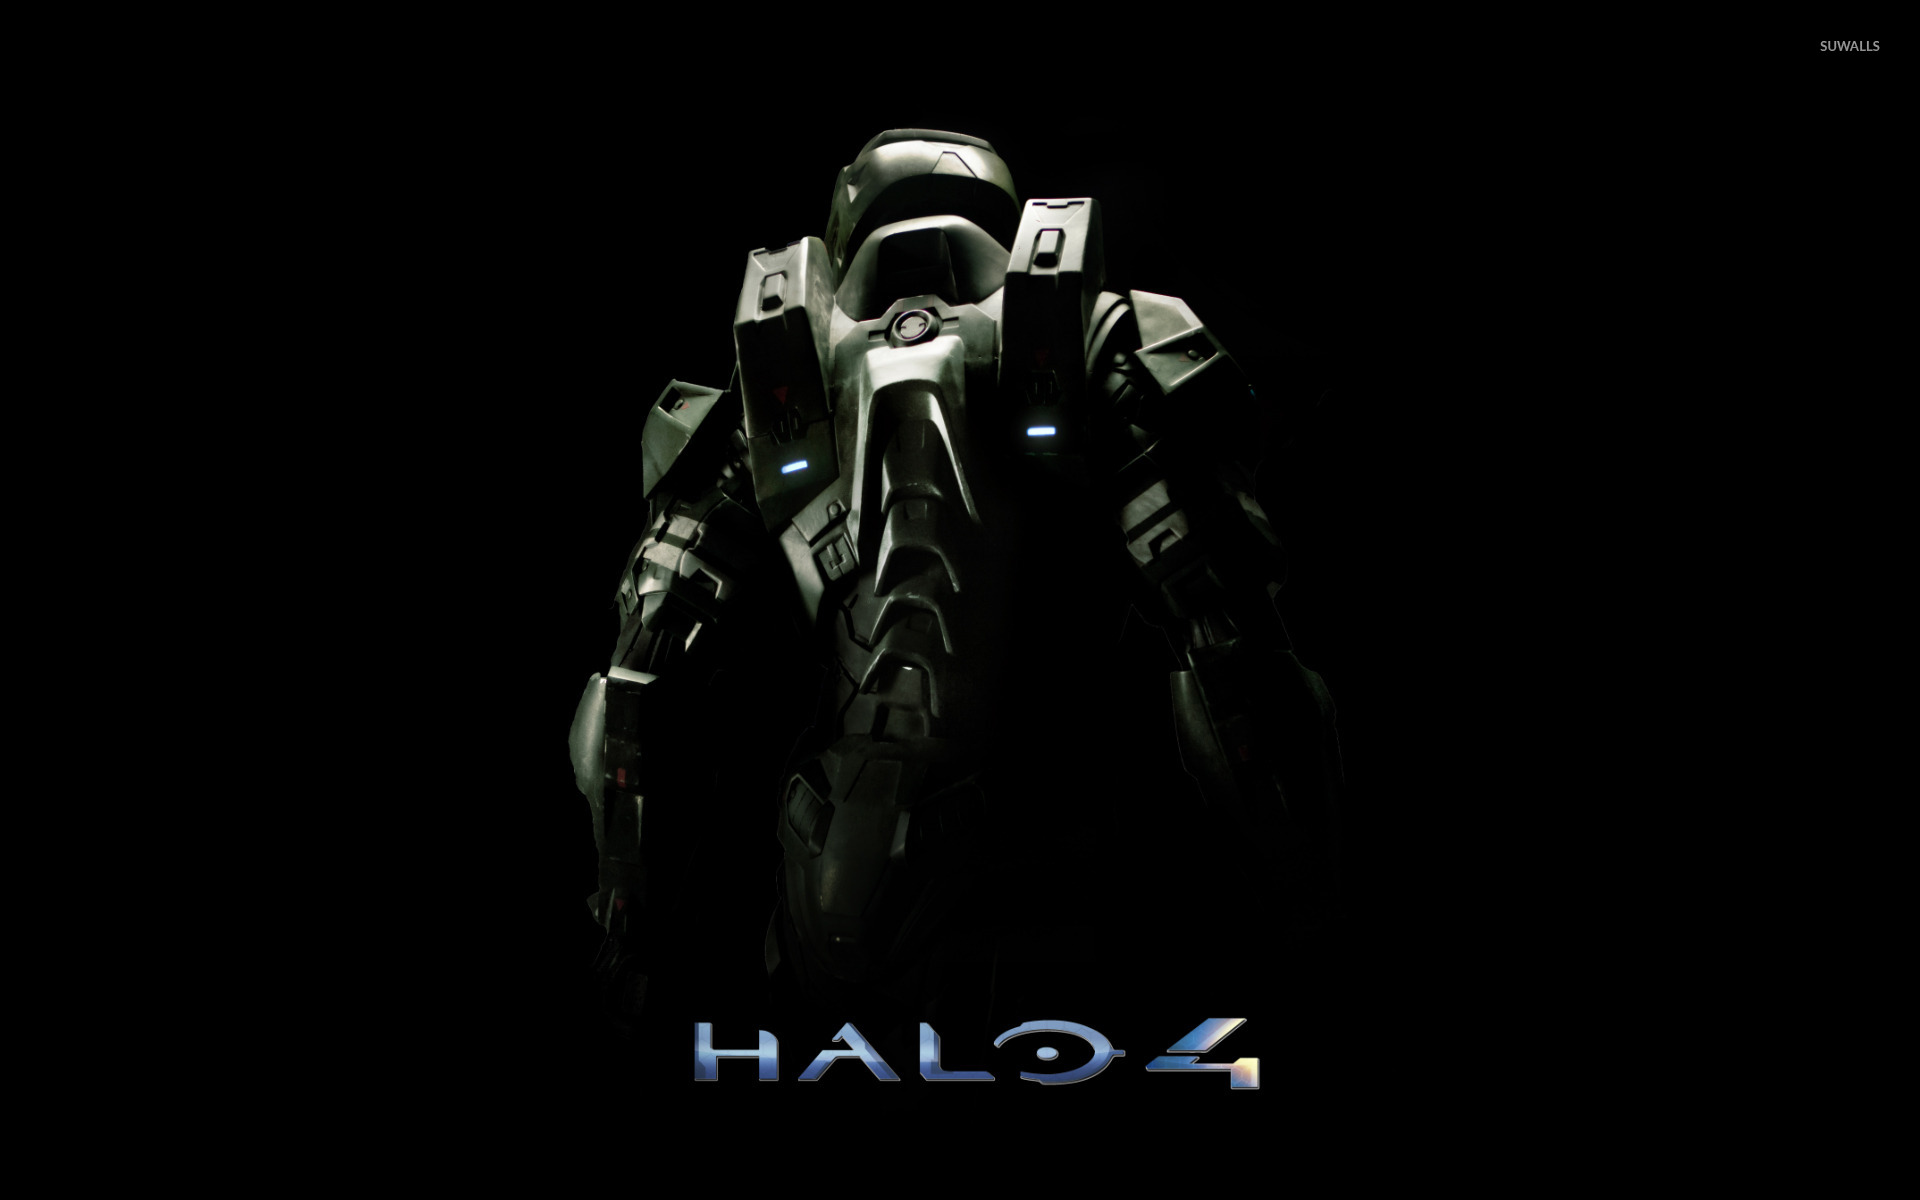 Halo 4 wallpaper   Game wallpapers   15533 1280x800